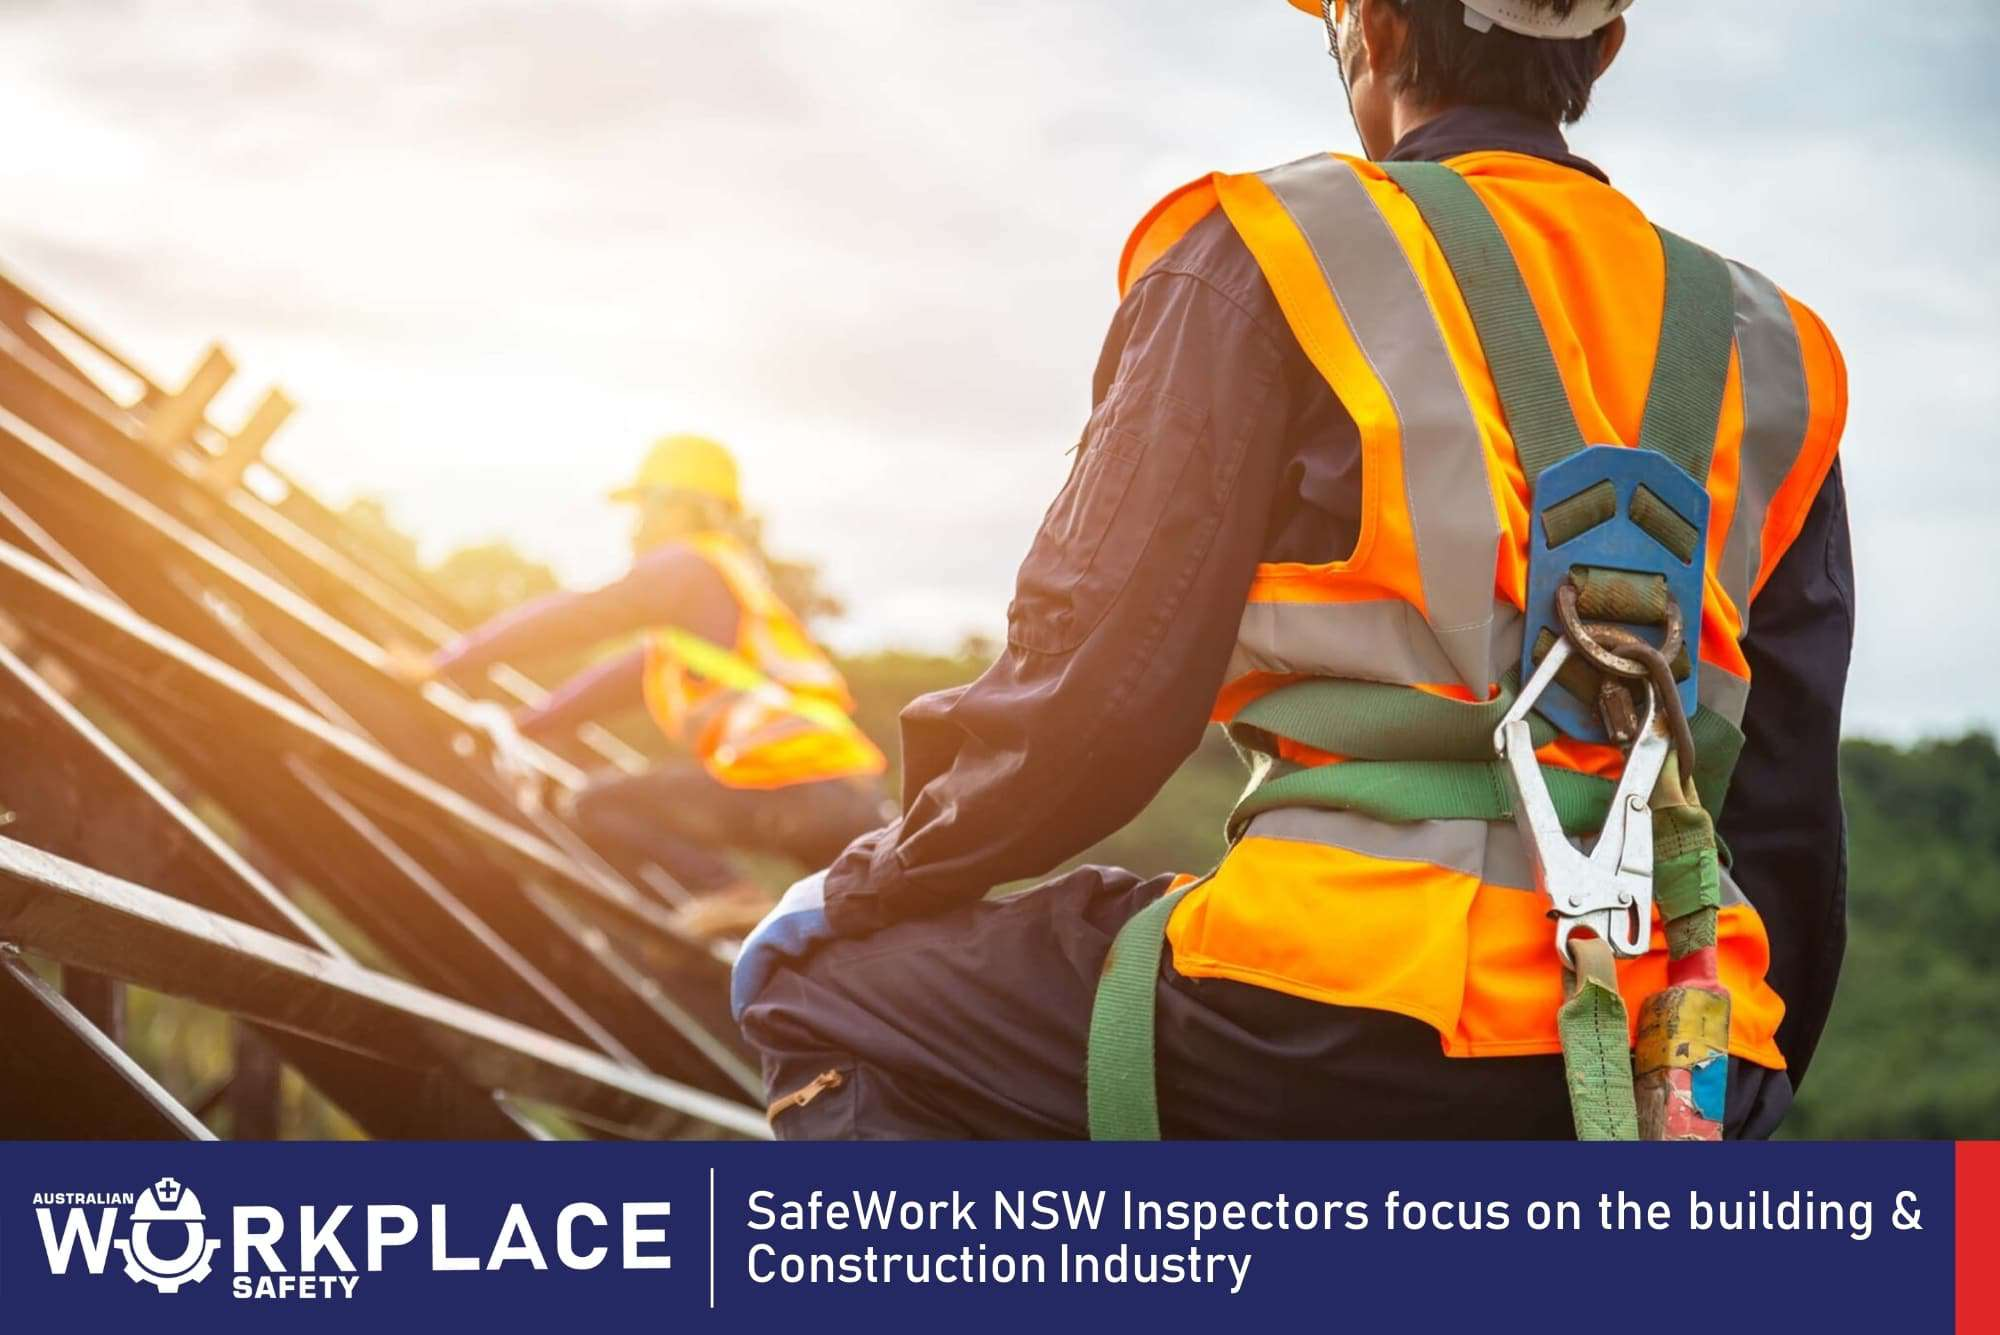 SafeWork NSW Inspectors focus on the building & Construction Industry